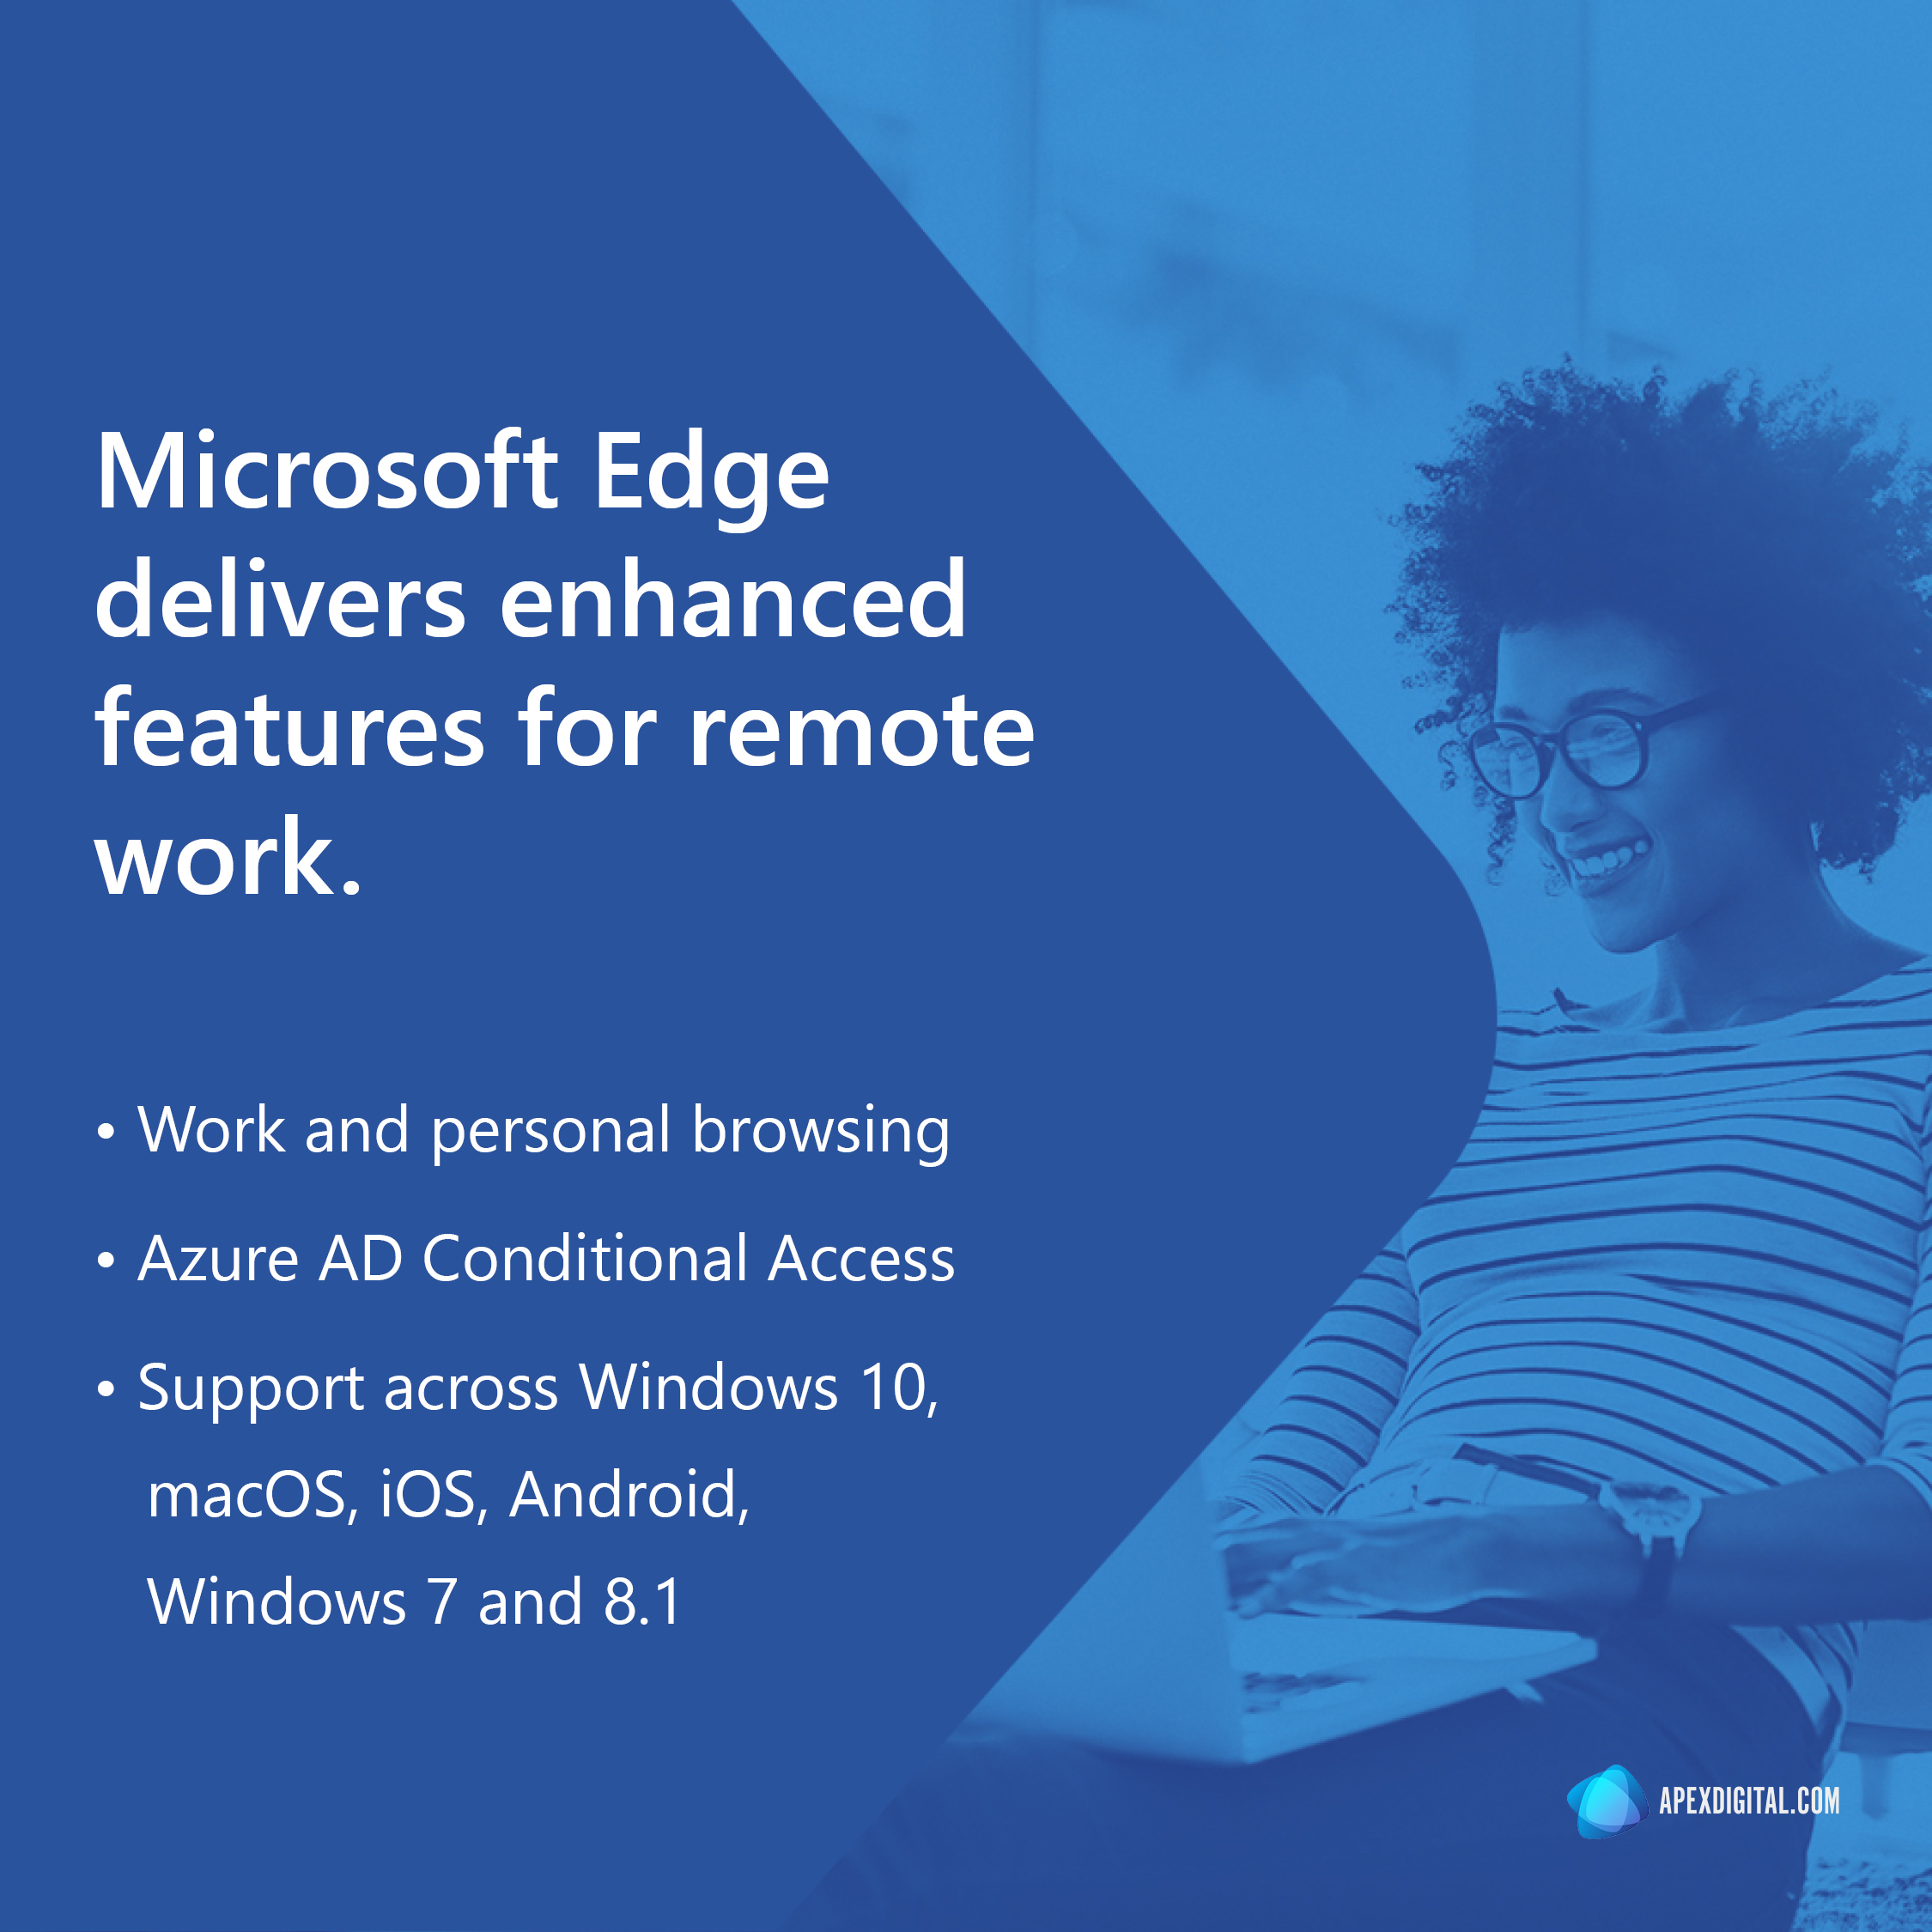 Microsoft Edge delivers enhanced features for remote work